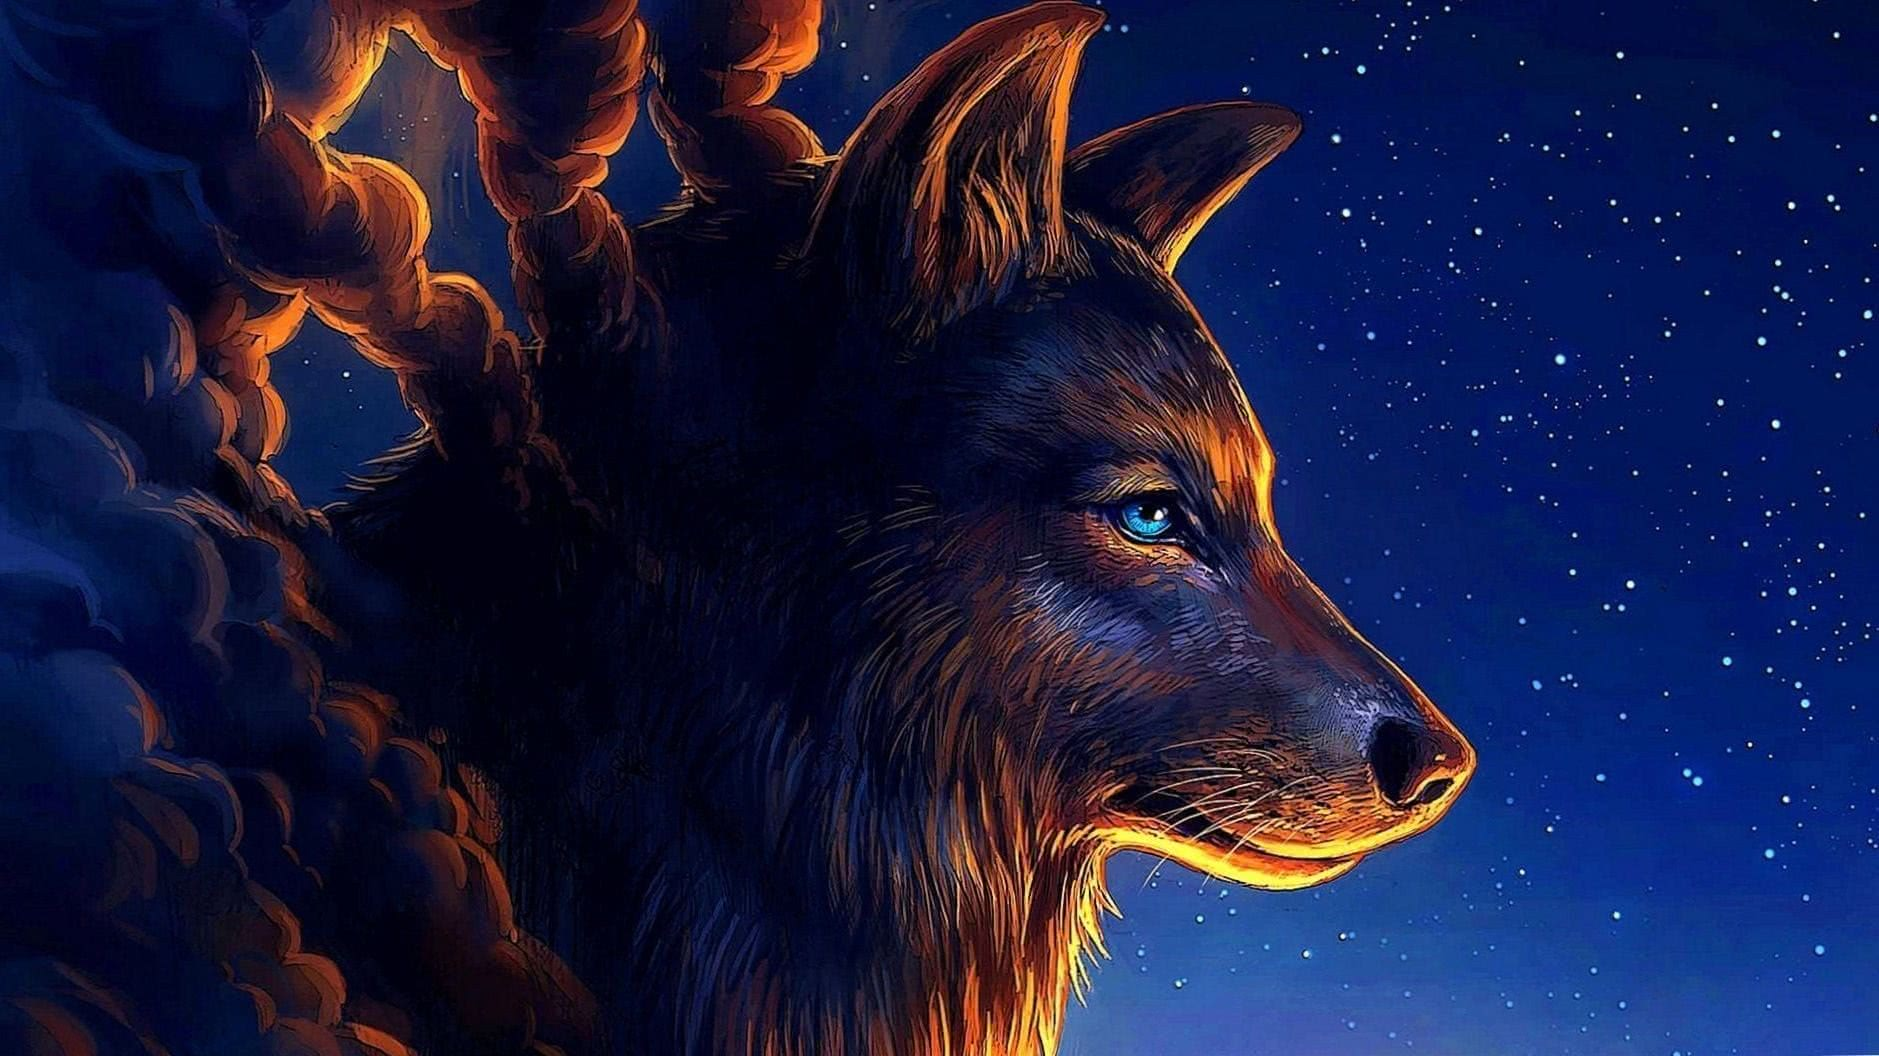 HD Wolf Fantasy Wallpapers